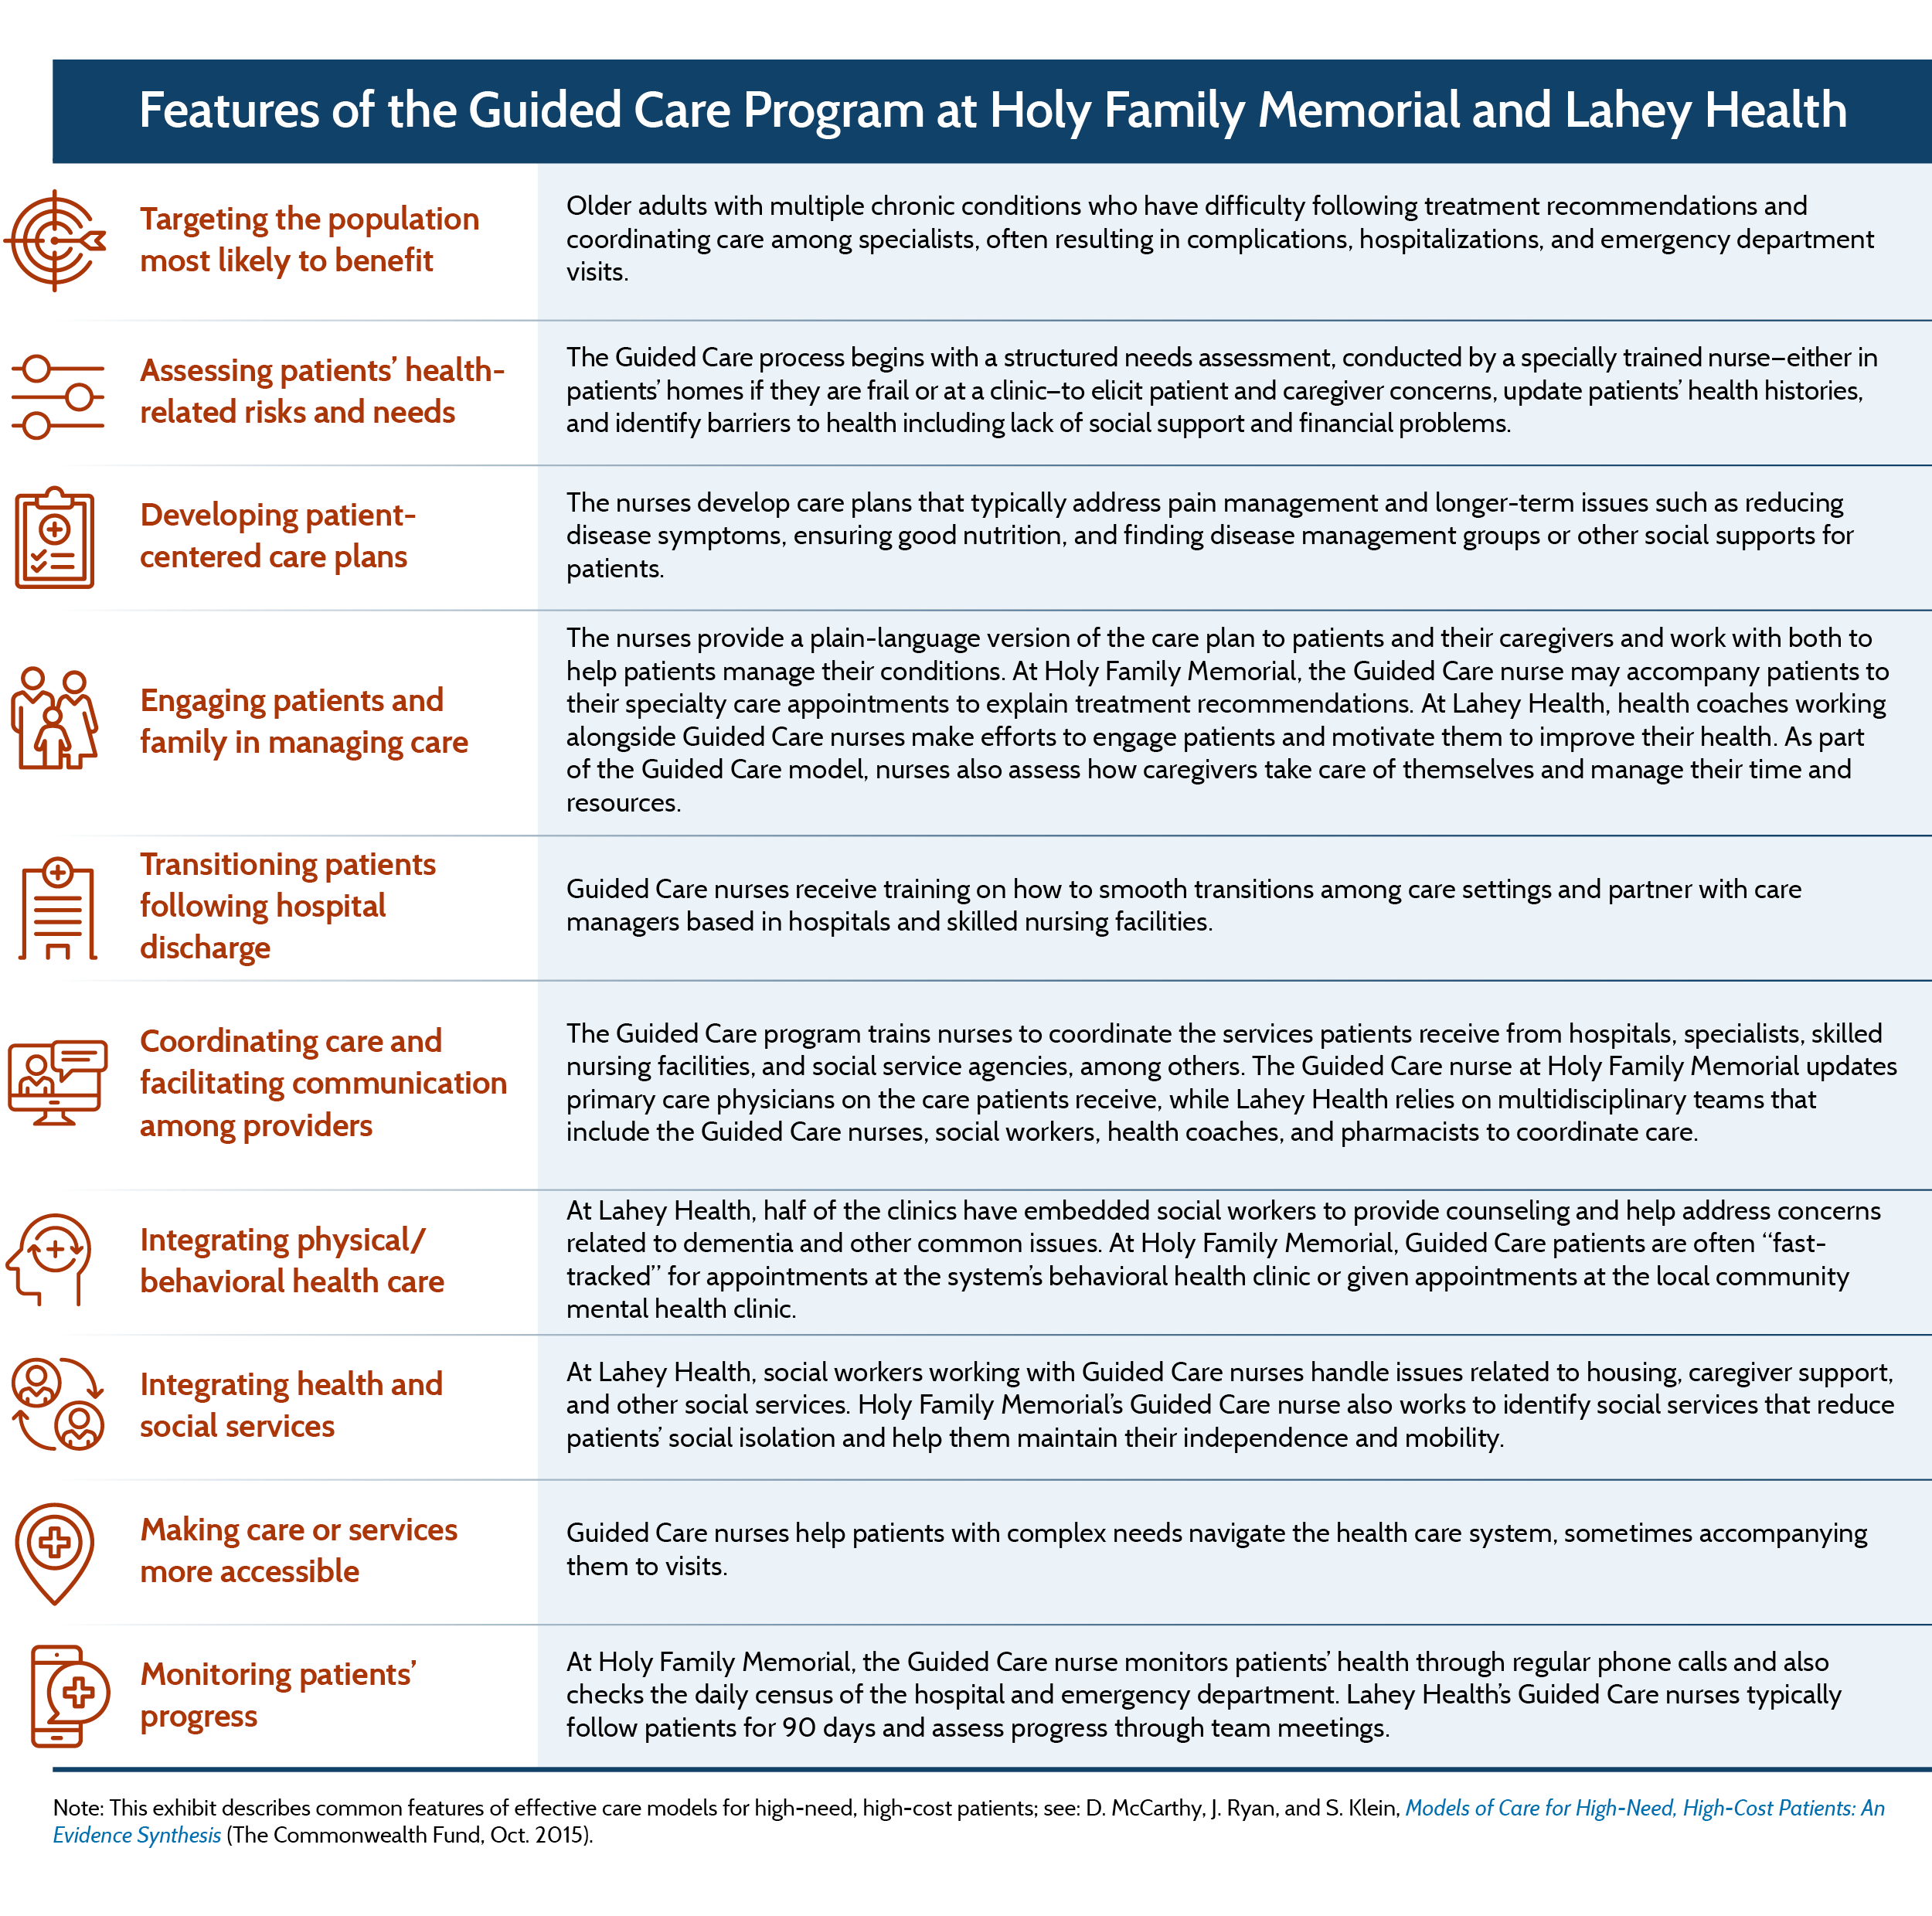 Guided Care: A Structured Approach to Providing